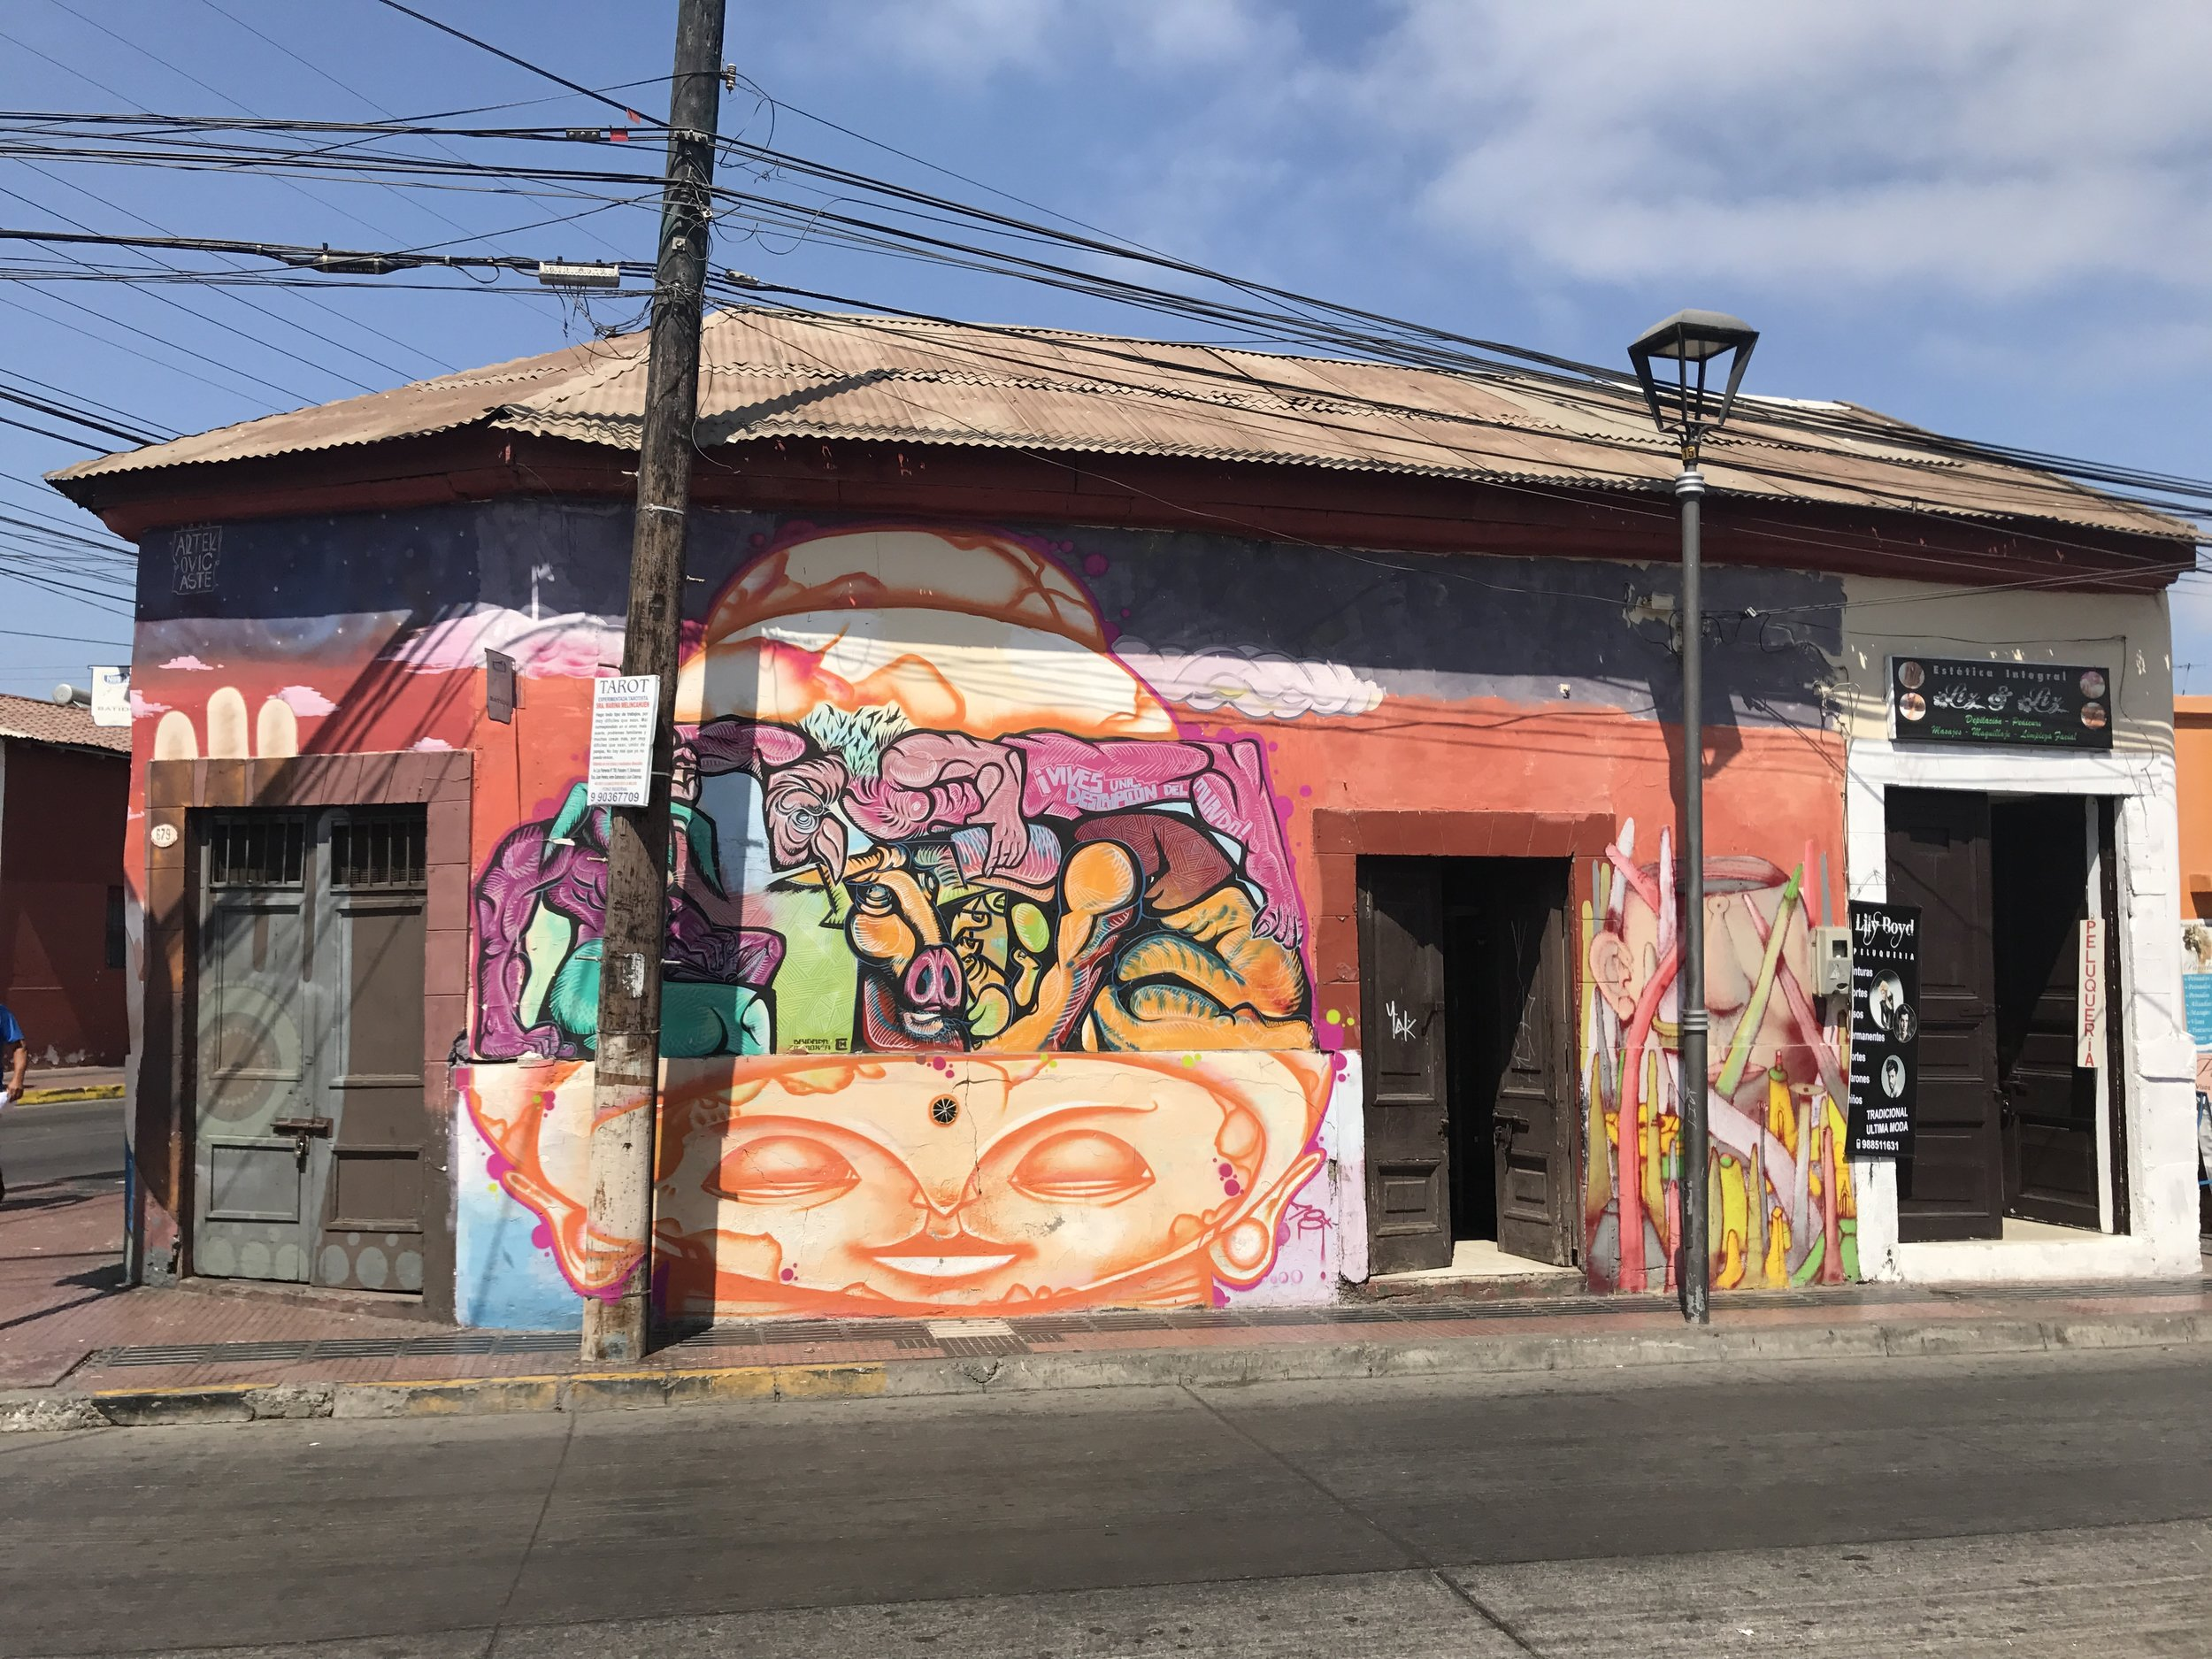 Just like Santiago, la Serena has tons of Graffitti - some of it quite loaded...